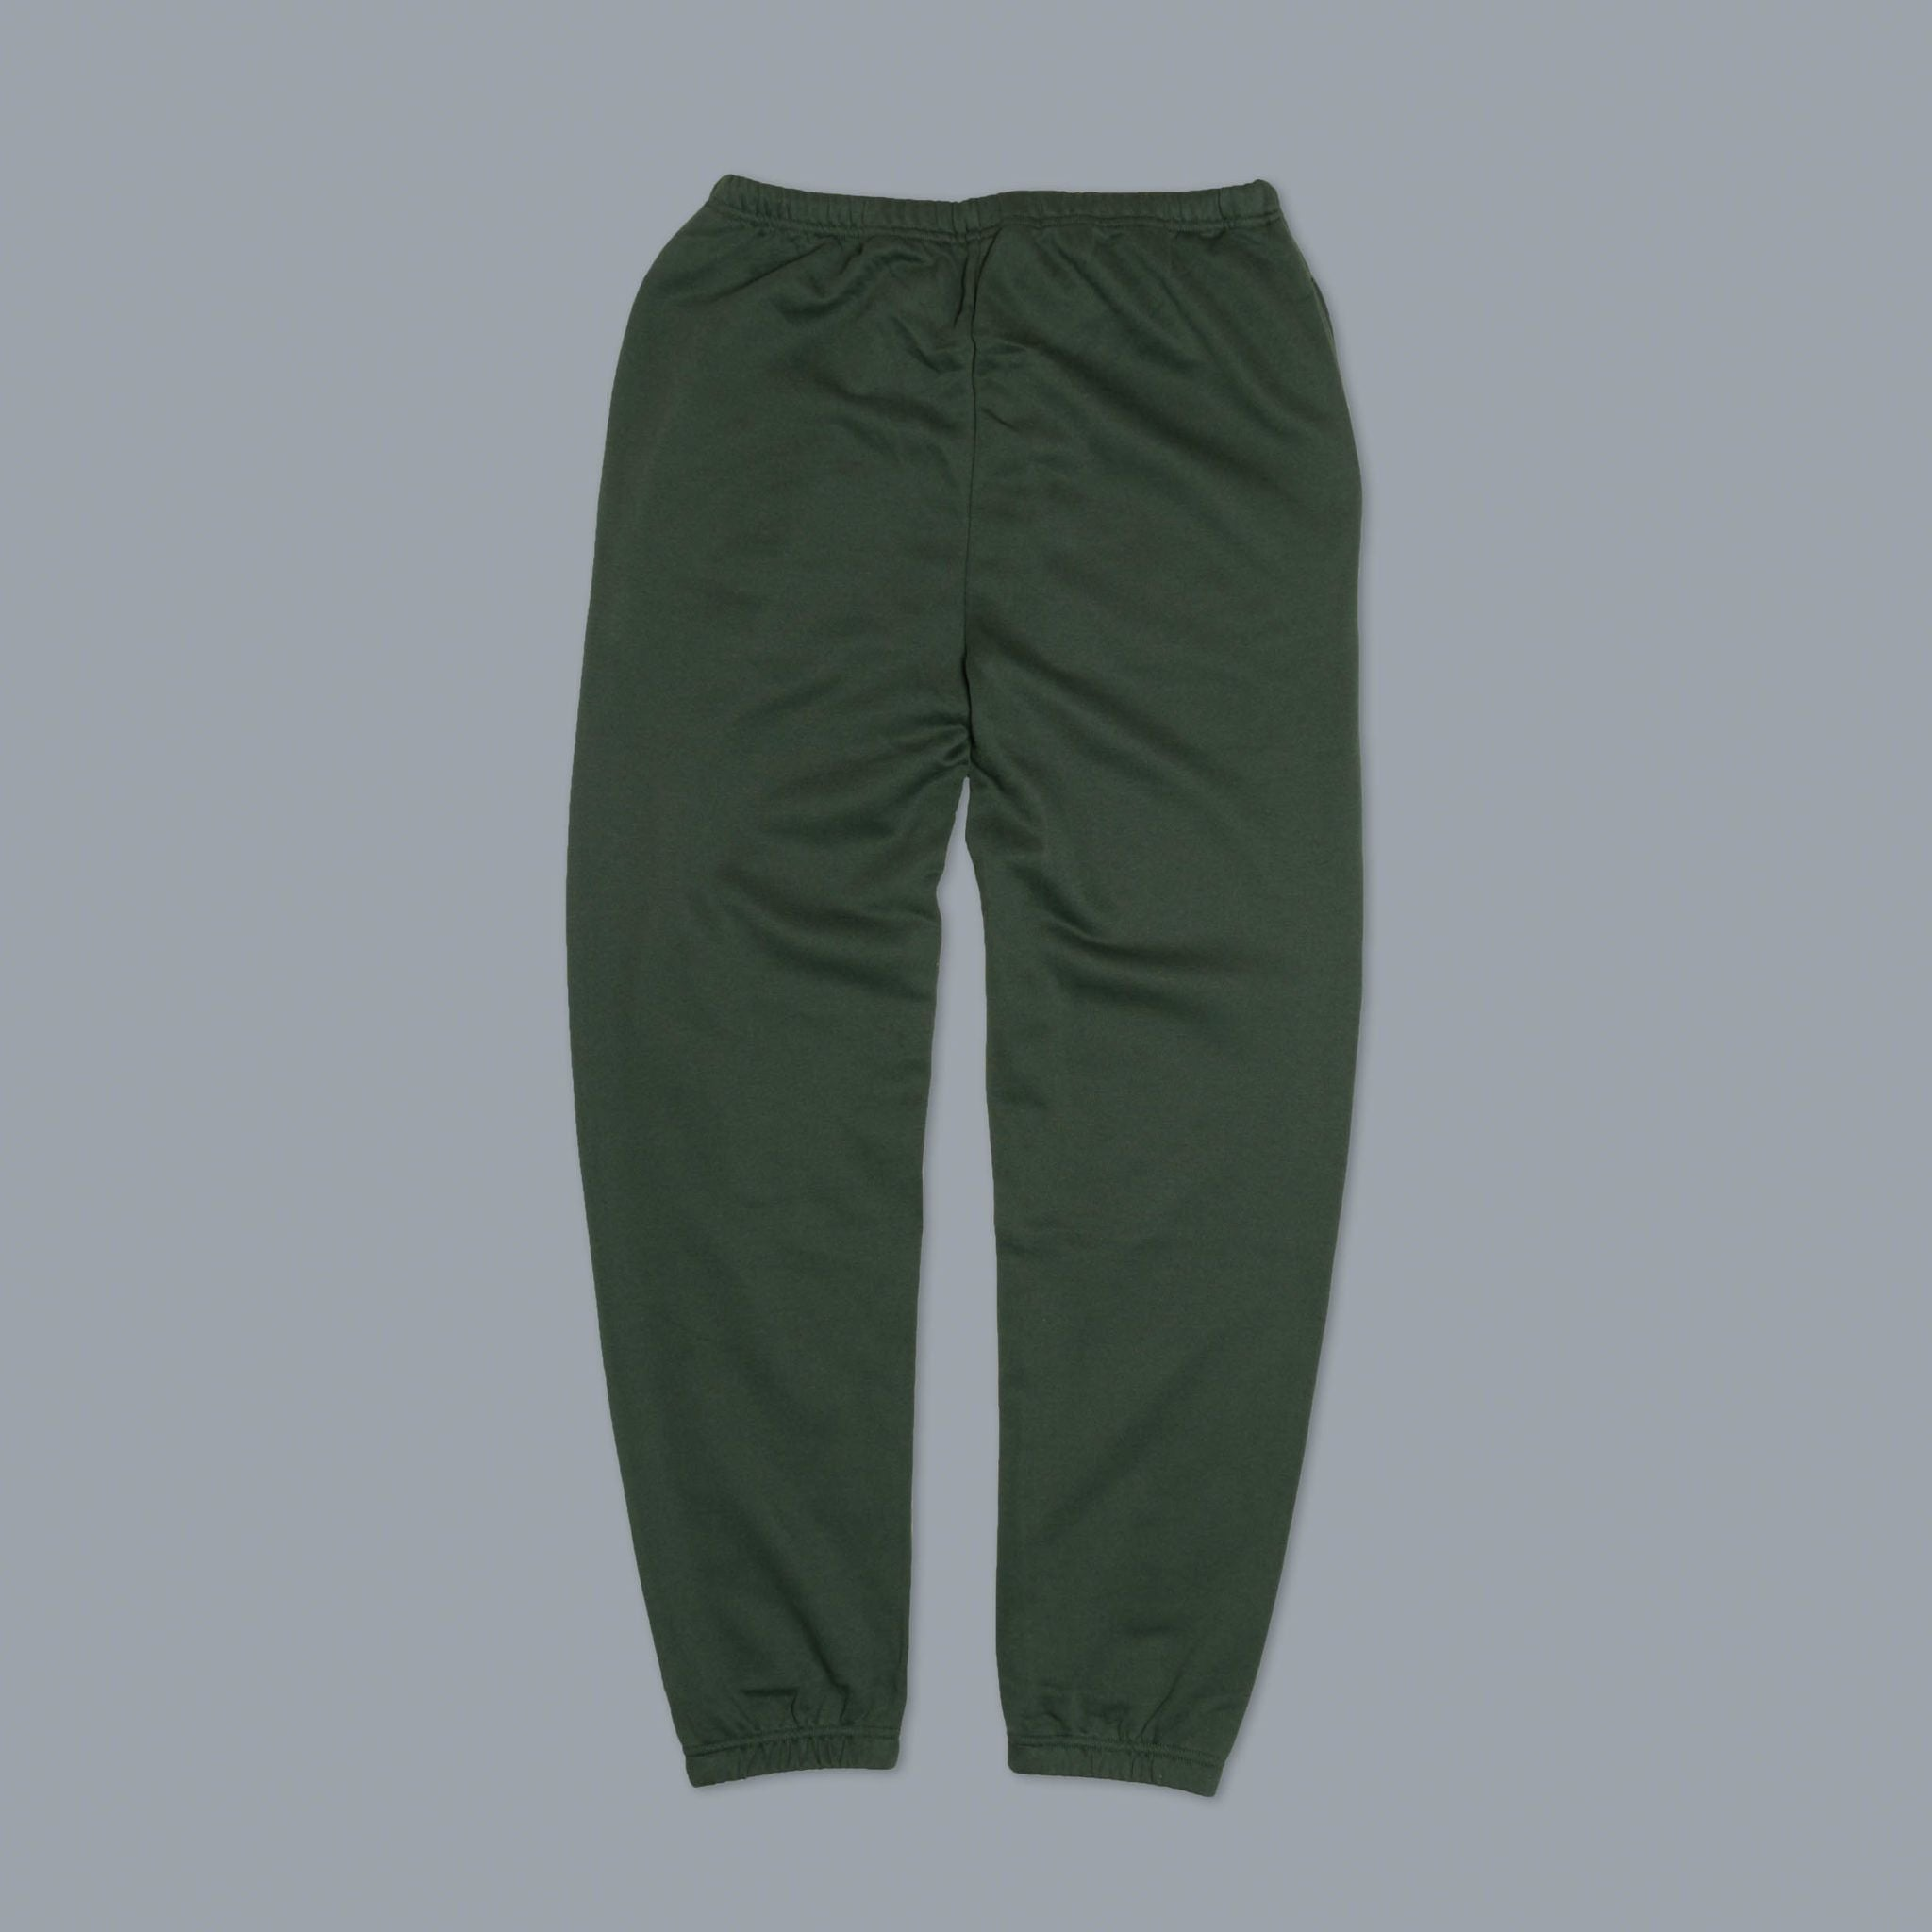 SCRAMBLE COLLEGIATE WRESTLING JOGGERS – SPORTING GREEN